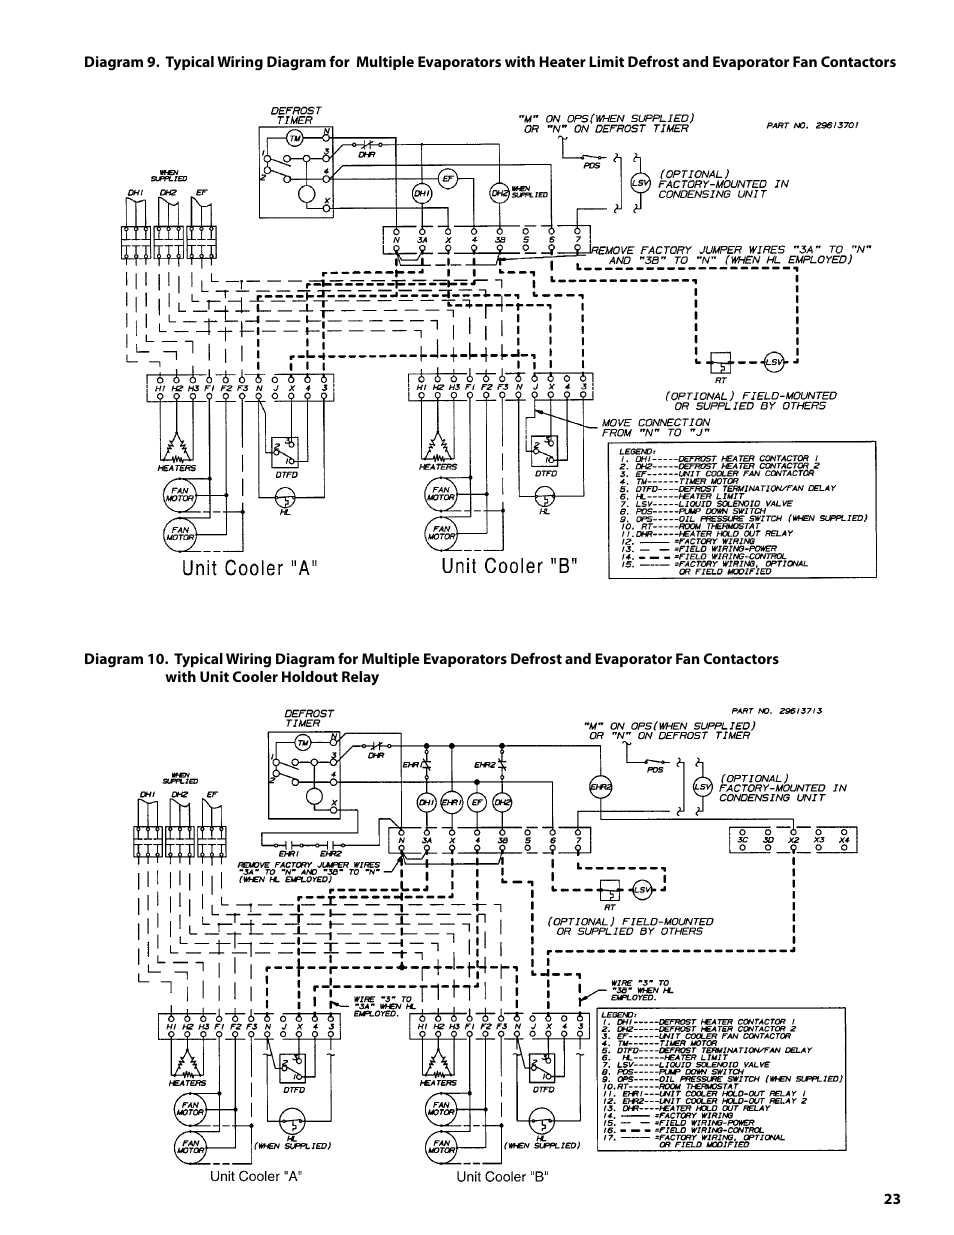 i0 wp com www manualsdir com manuals 91499 23 heat heatcraft freezer wiring-diagram heatcraft refrigeration wiring diagrams #5